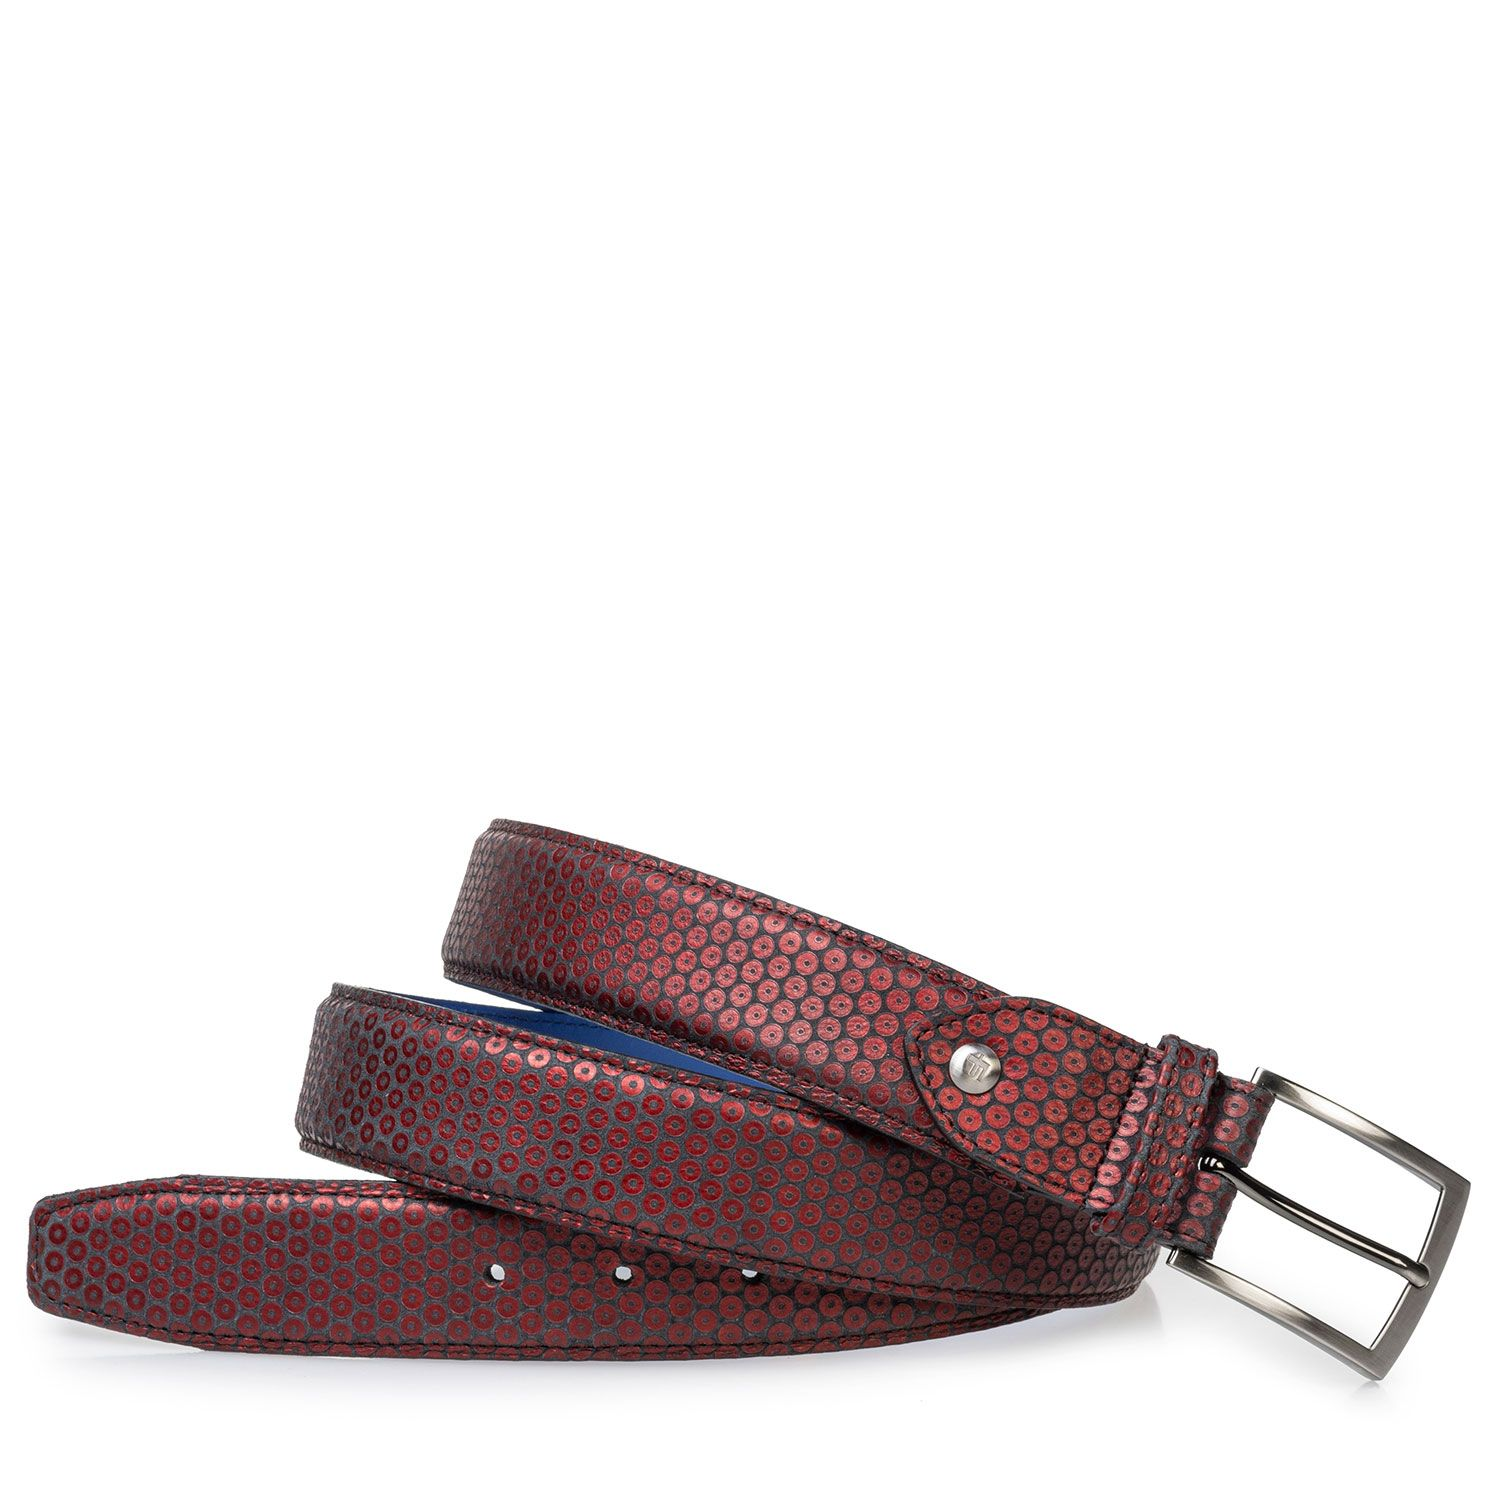 75203/50 - Leather belt red with print